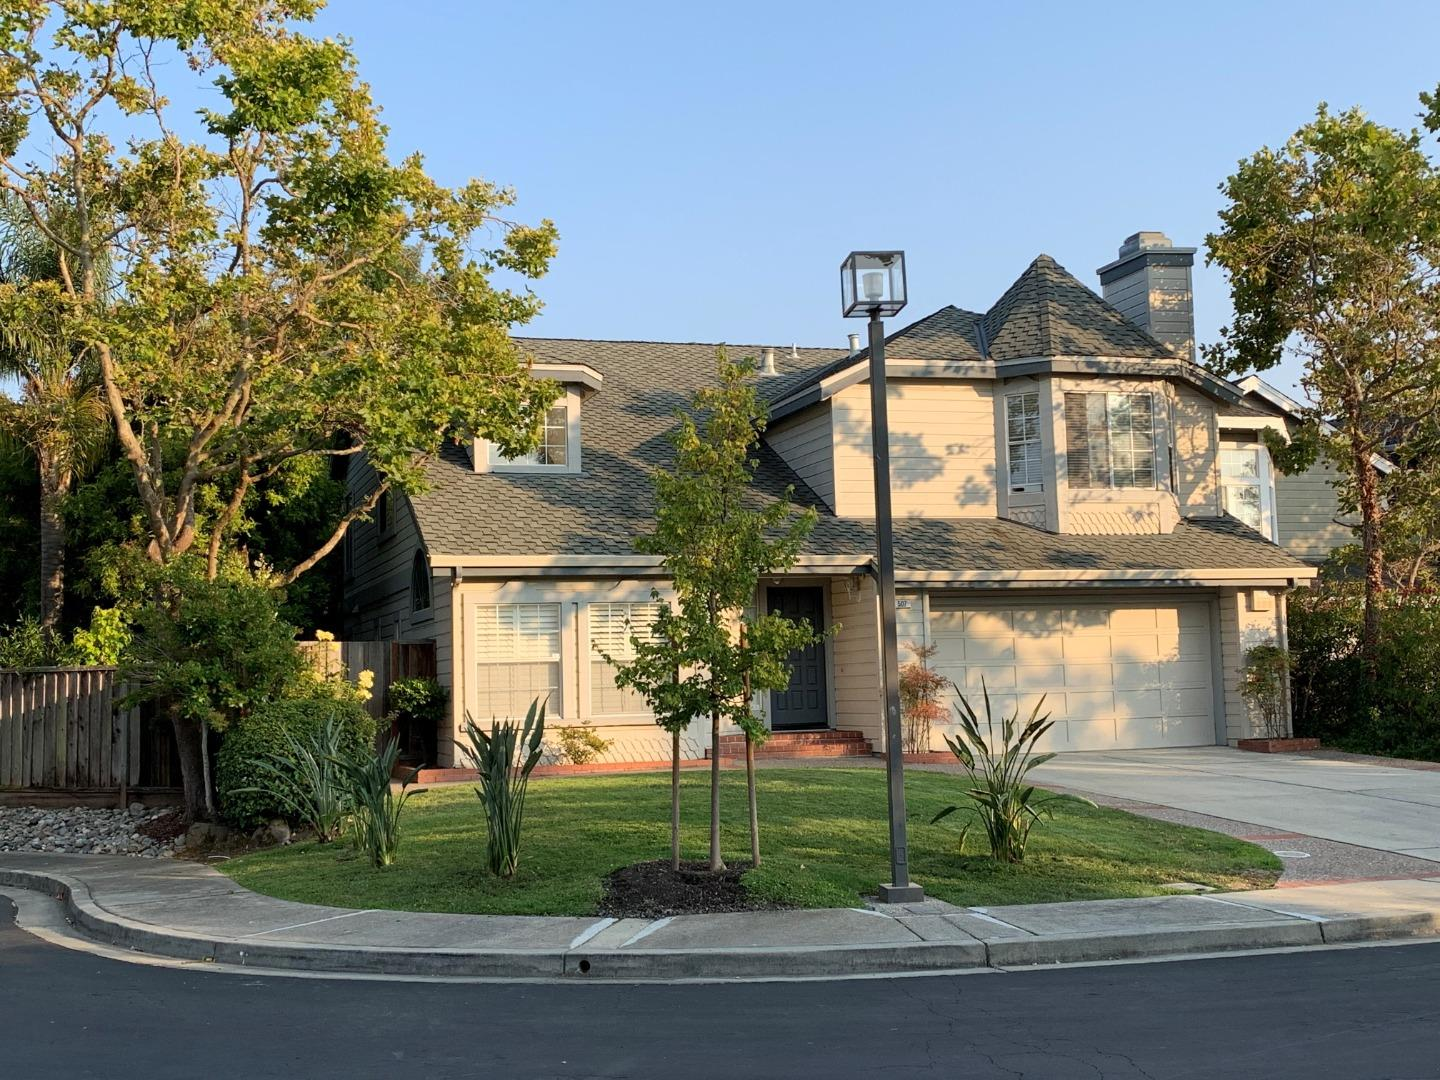 Step through the custom entry door to discover this gracious 5 bed / 3 bath home in the premier Antiqua neighborhood.  Located on a quiet cul-de-sac. This home has been enjoyed and well cared for over the past 22 years. Thoughtfully updated with 1 bed/bath on the main level. Marble tile entry to the spacious living & dining area w/vaulted ceilings. Exceptional natural lighting, well apportioned bedrooms and European & Japanese finishes/fixtures throughout from foyer through kitchen/bathrooms, including granite kitchen countertops and full slab marble bathroom vanities. Family room w/fireplace opens up to landscaped backyard. Primary Suite with a fireplace and walk-in closet. Garage is showroom ready, extended driveway for easy parking and water saving fixtures/exterior sprinkler system in place. Situated only minutes away from your private clubhouse, pool, gym, and tennis courts, award-winning Foster City schools, shopping, Sea Cloud & Port Royal Park, and access to major highways.